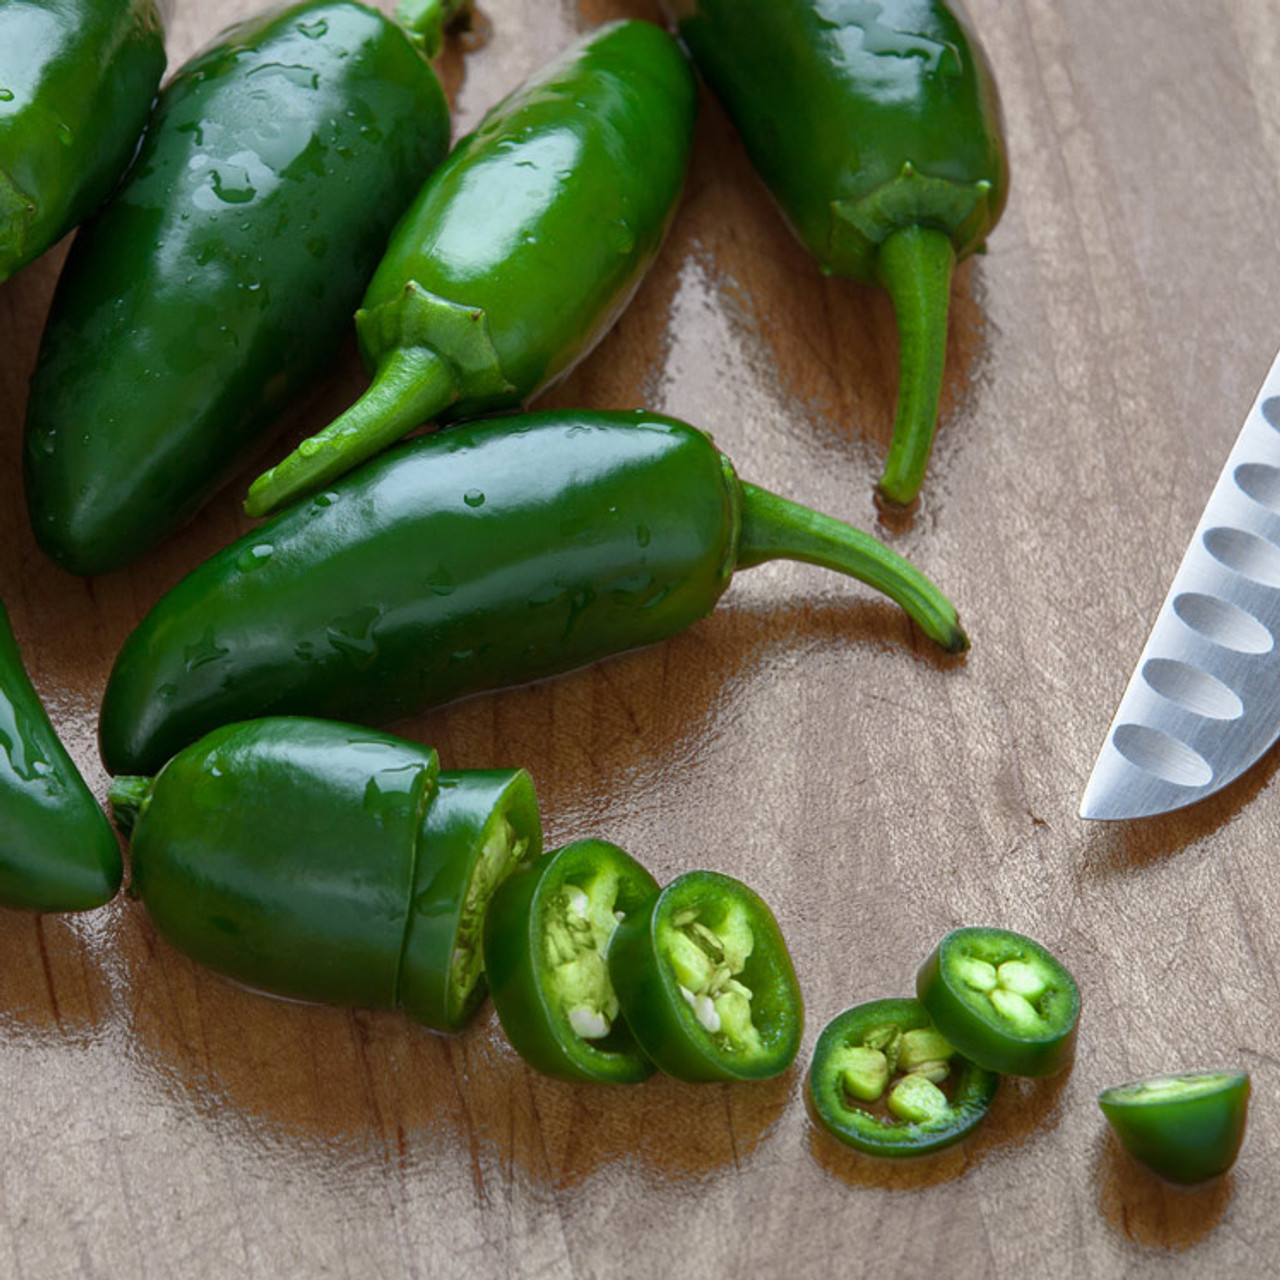 JALAPENO PEPPER 1/4 DICED DRIED